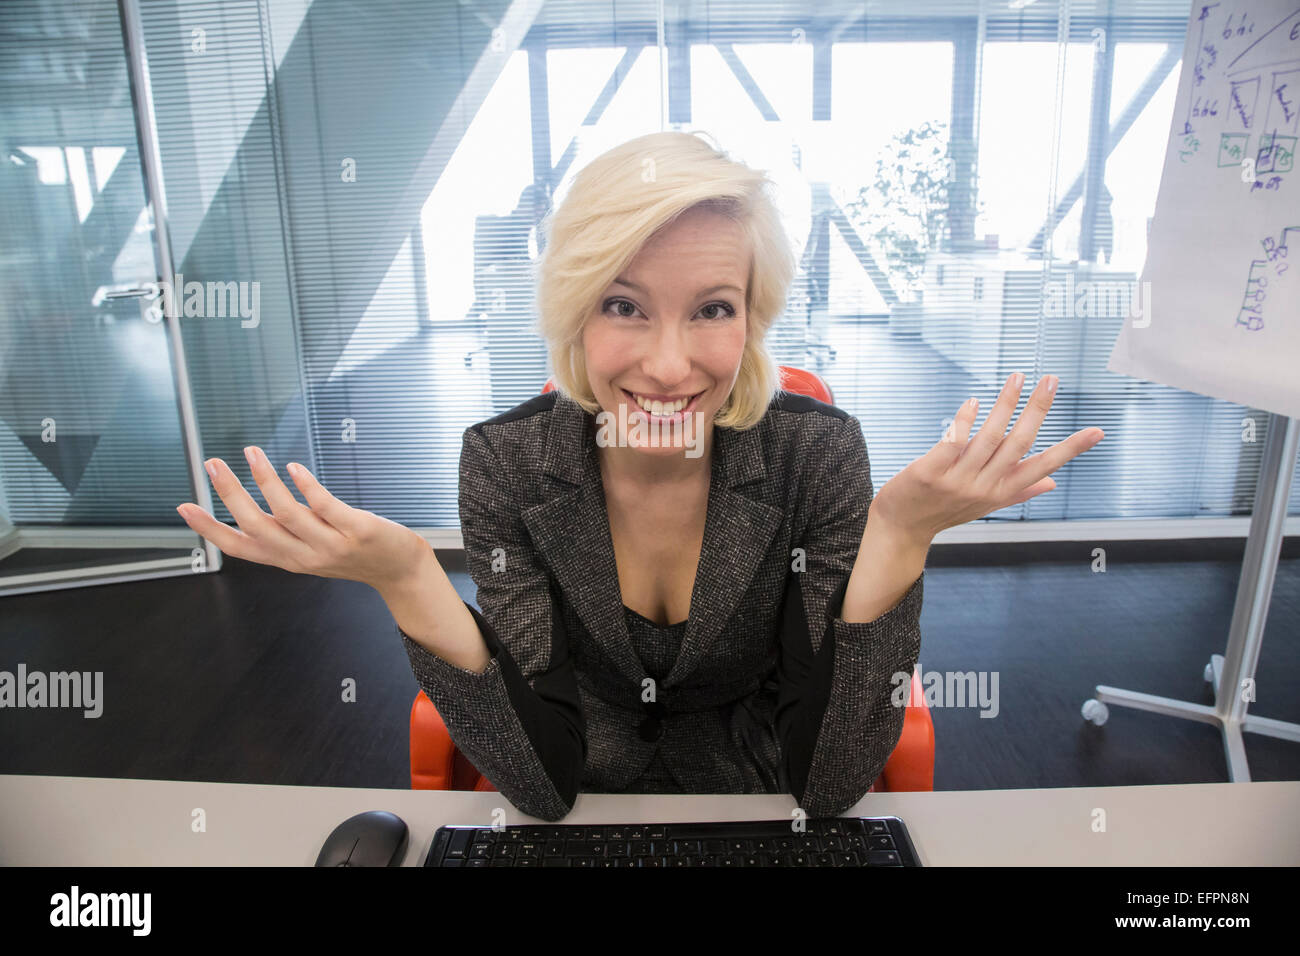 Mid adult woman shrugging, portrait - Stock Image